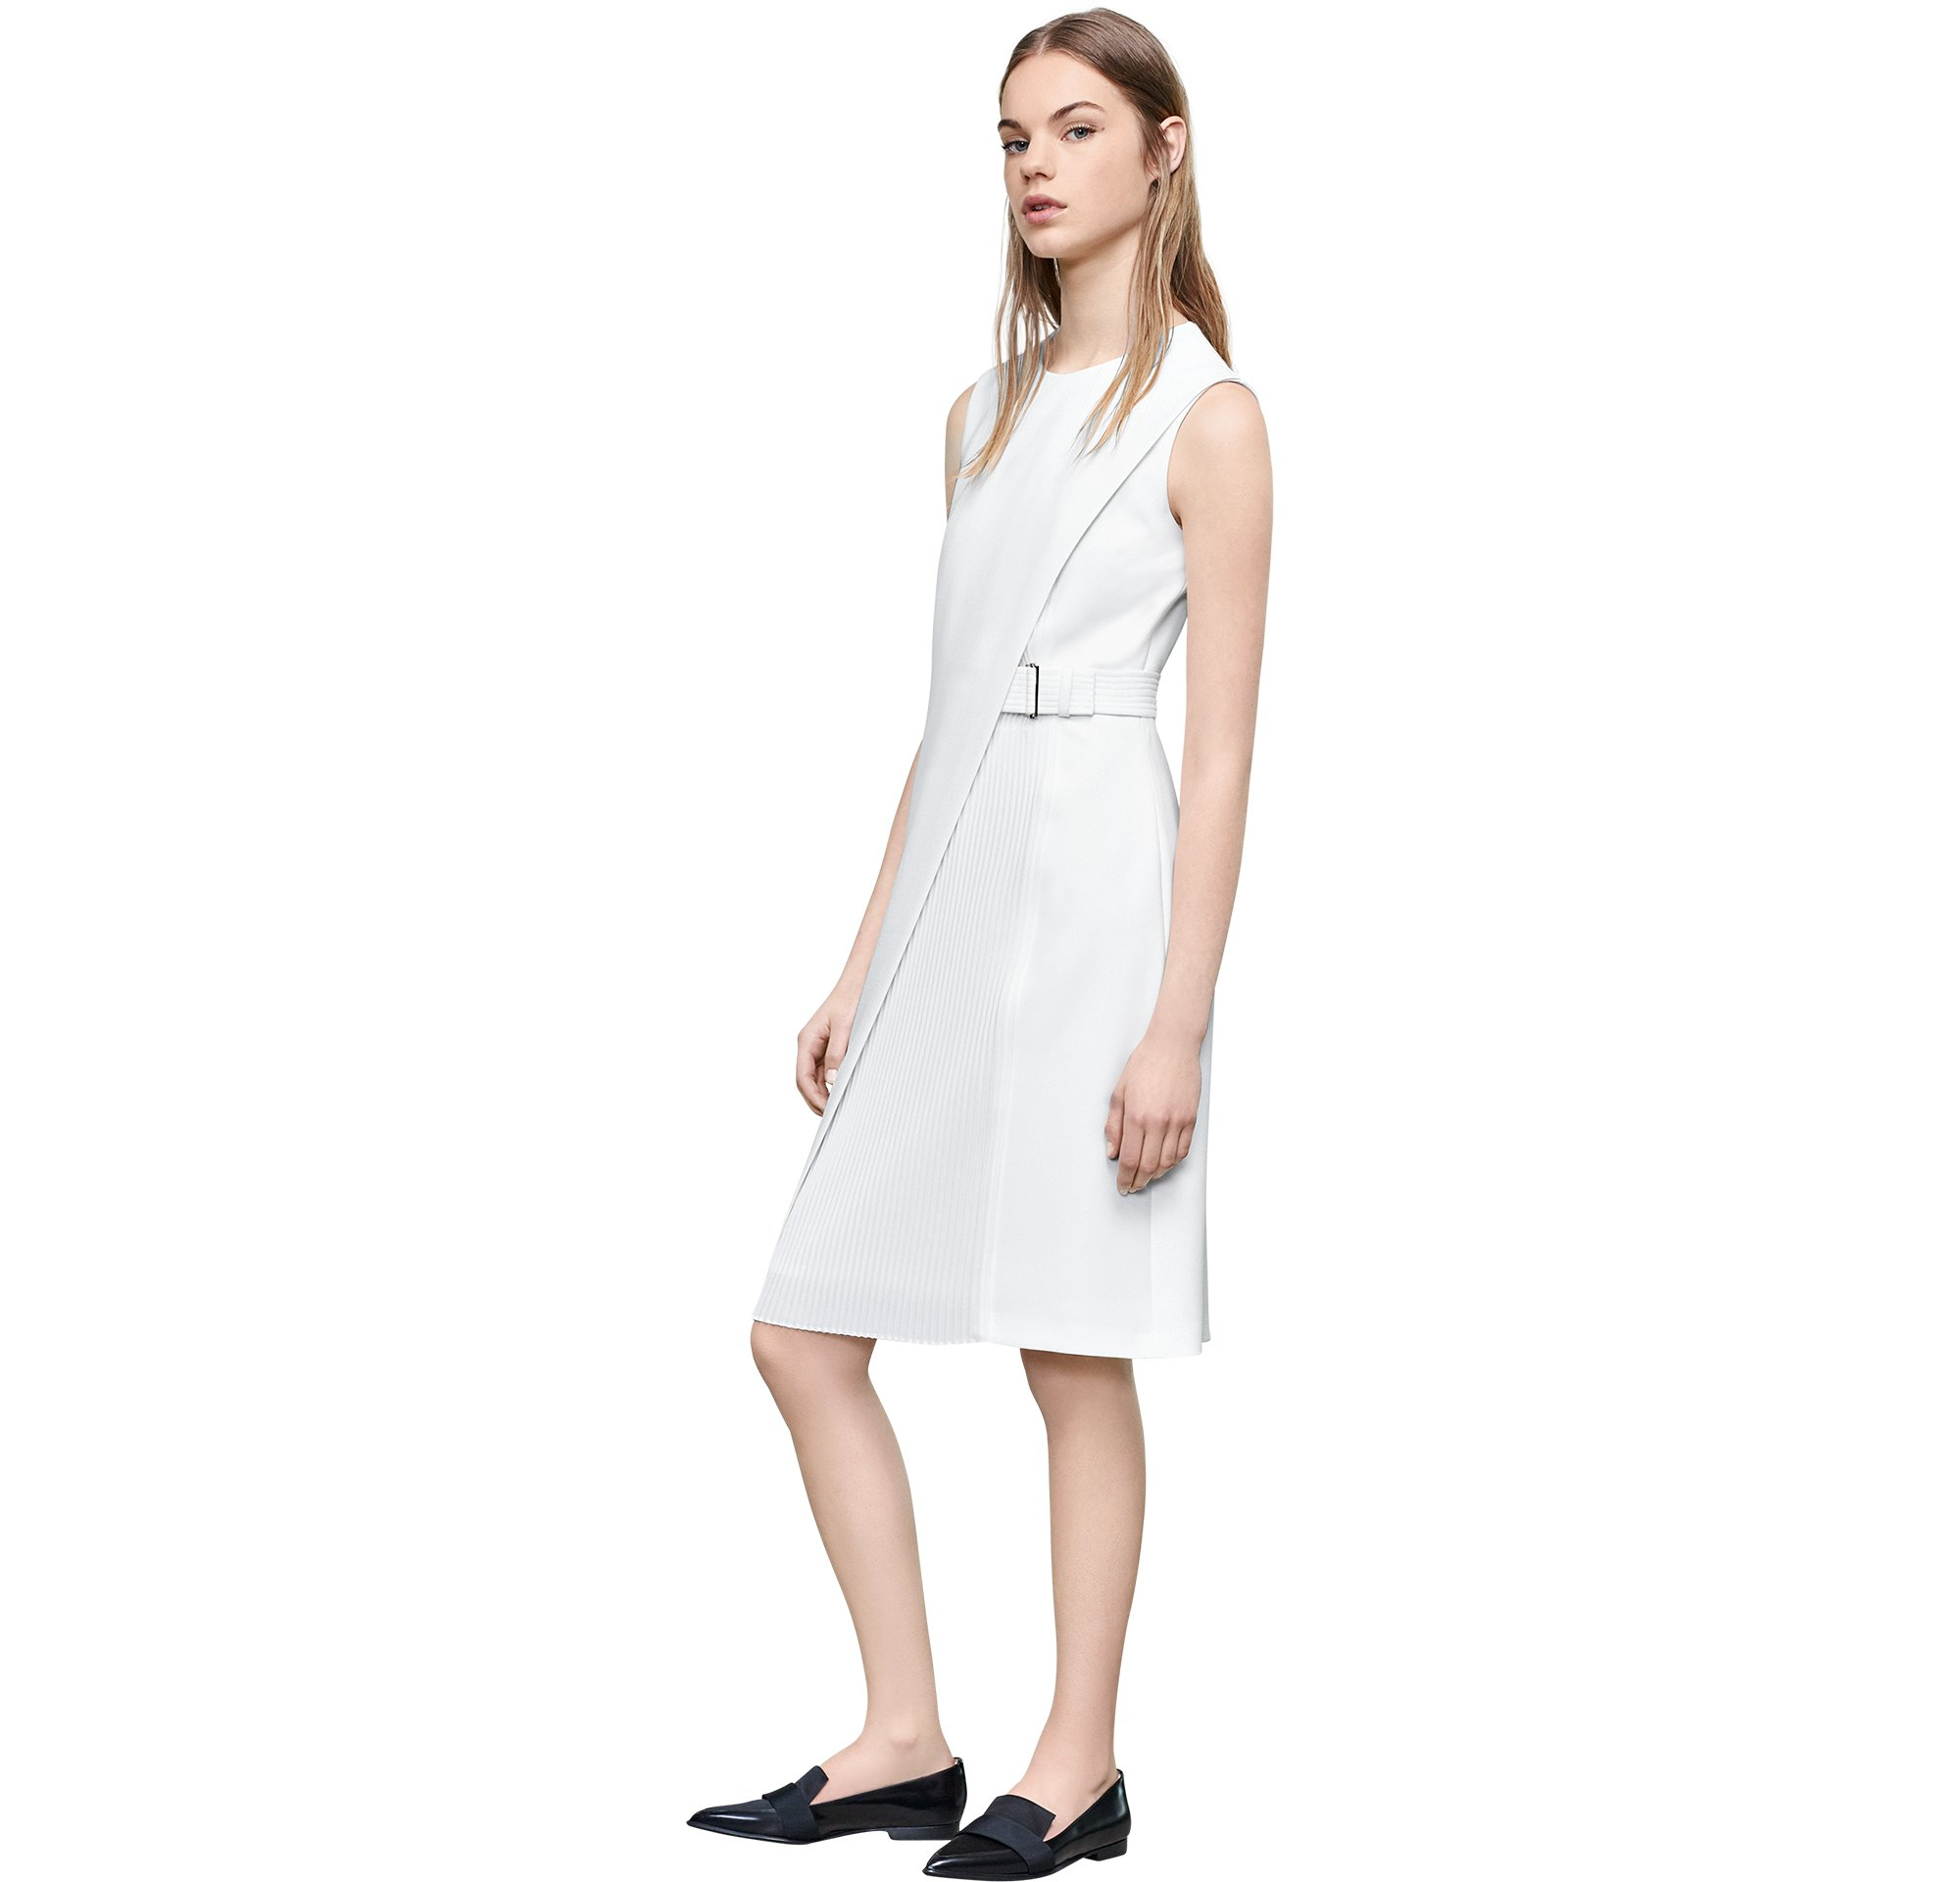 Dress and shoes by BOSS Womenswear